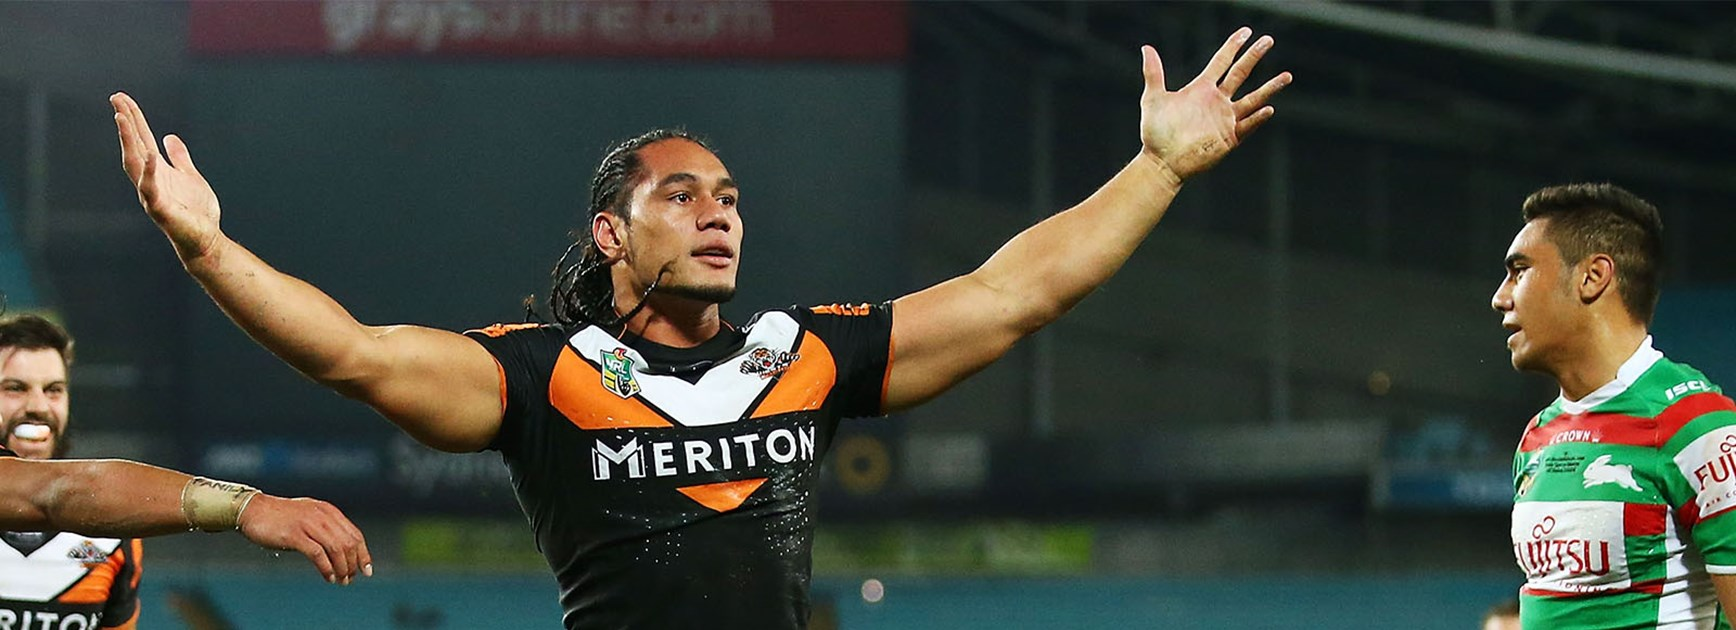 Martin Taupau celebrates his second try against the Rabbitohs at ANZ Stadium.